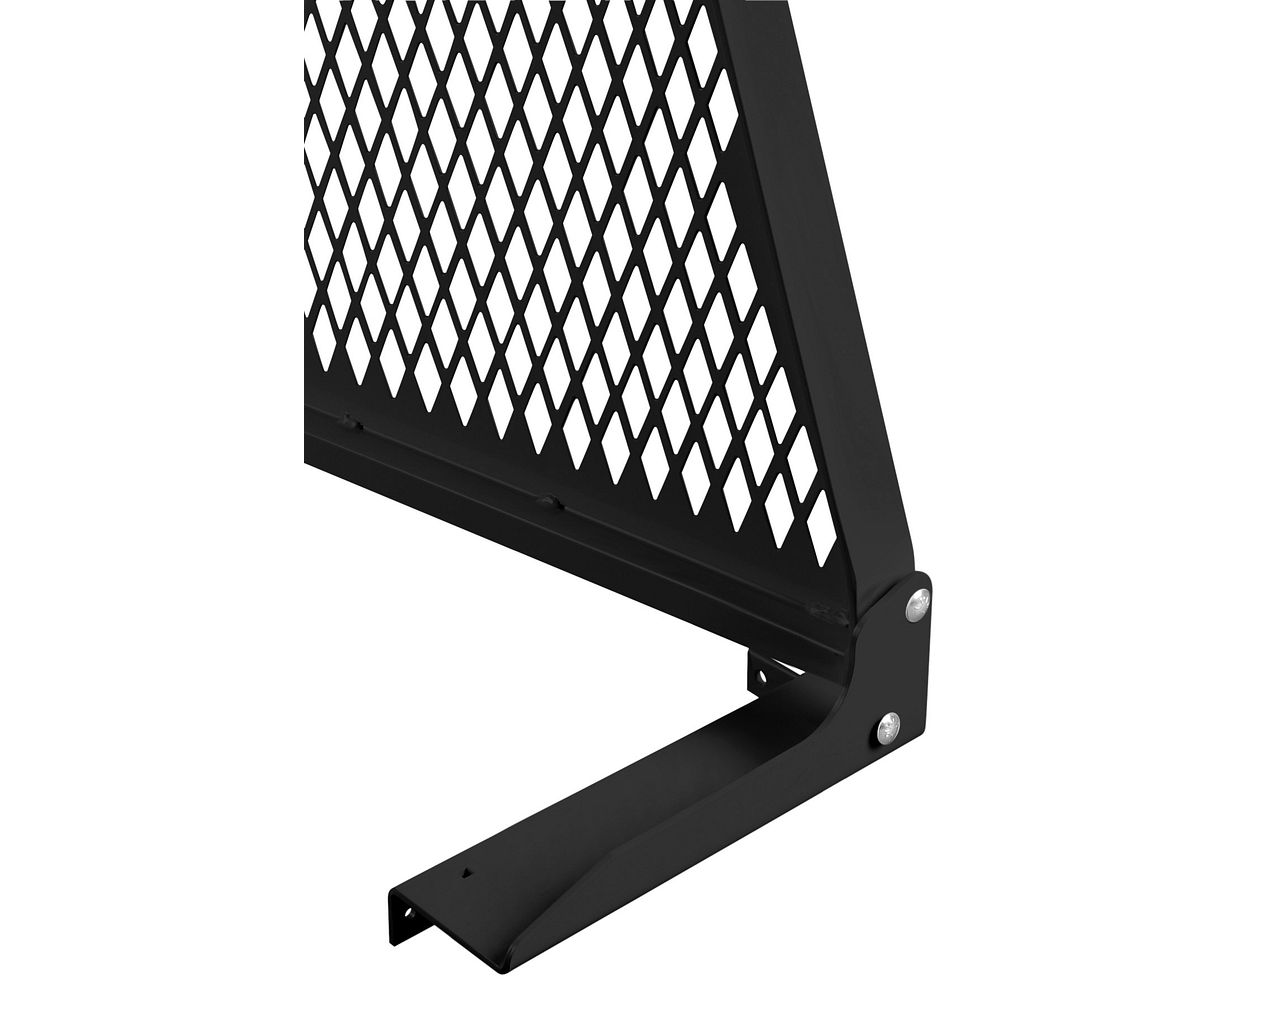 Weather Guard 1916-5 Cab Protector Mounting Kit, Black